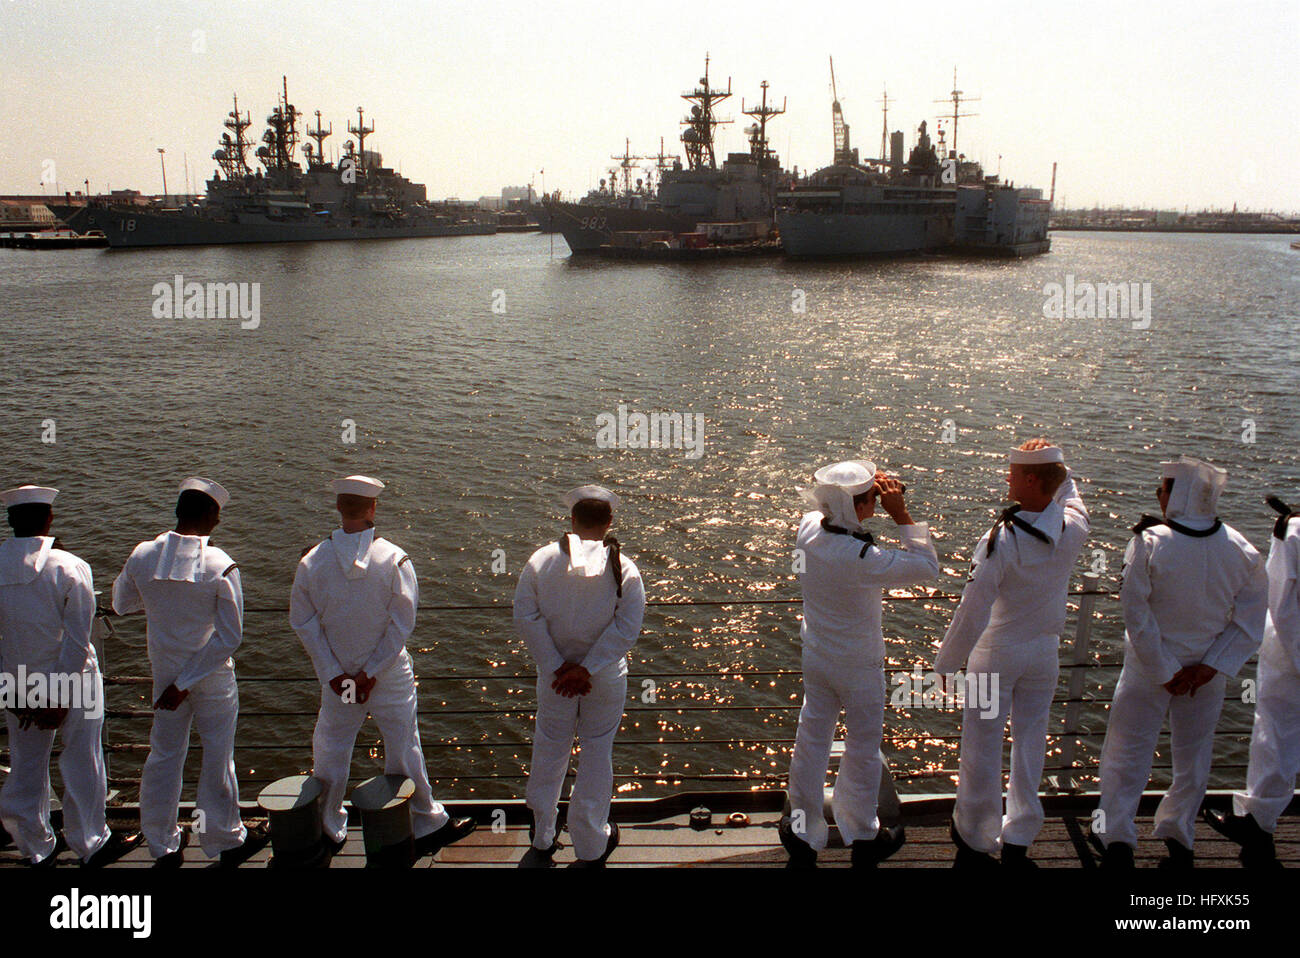 Crew members man the rails aboard the guided missile frigate USS NICHOLAS (FFG-47) as the vessel passes the destroyer - Stock Image